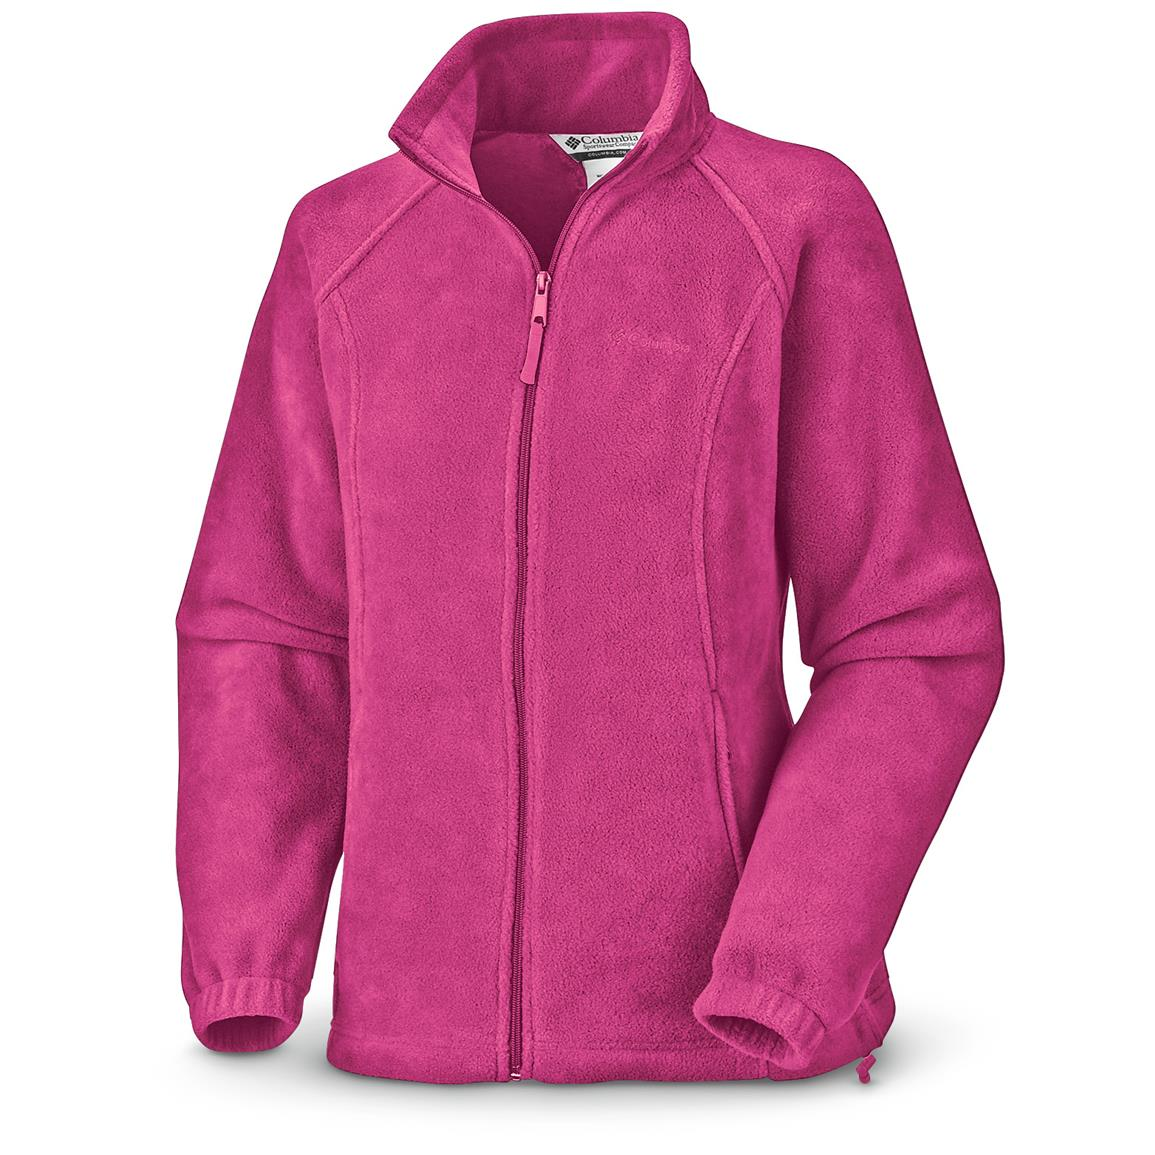 Columbia Women's Benton Springs Full-zip Fleece Jacket, Haute Pink